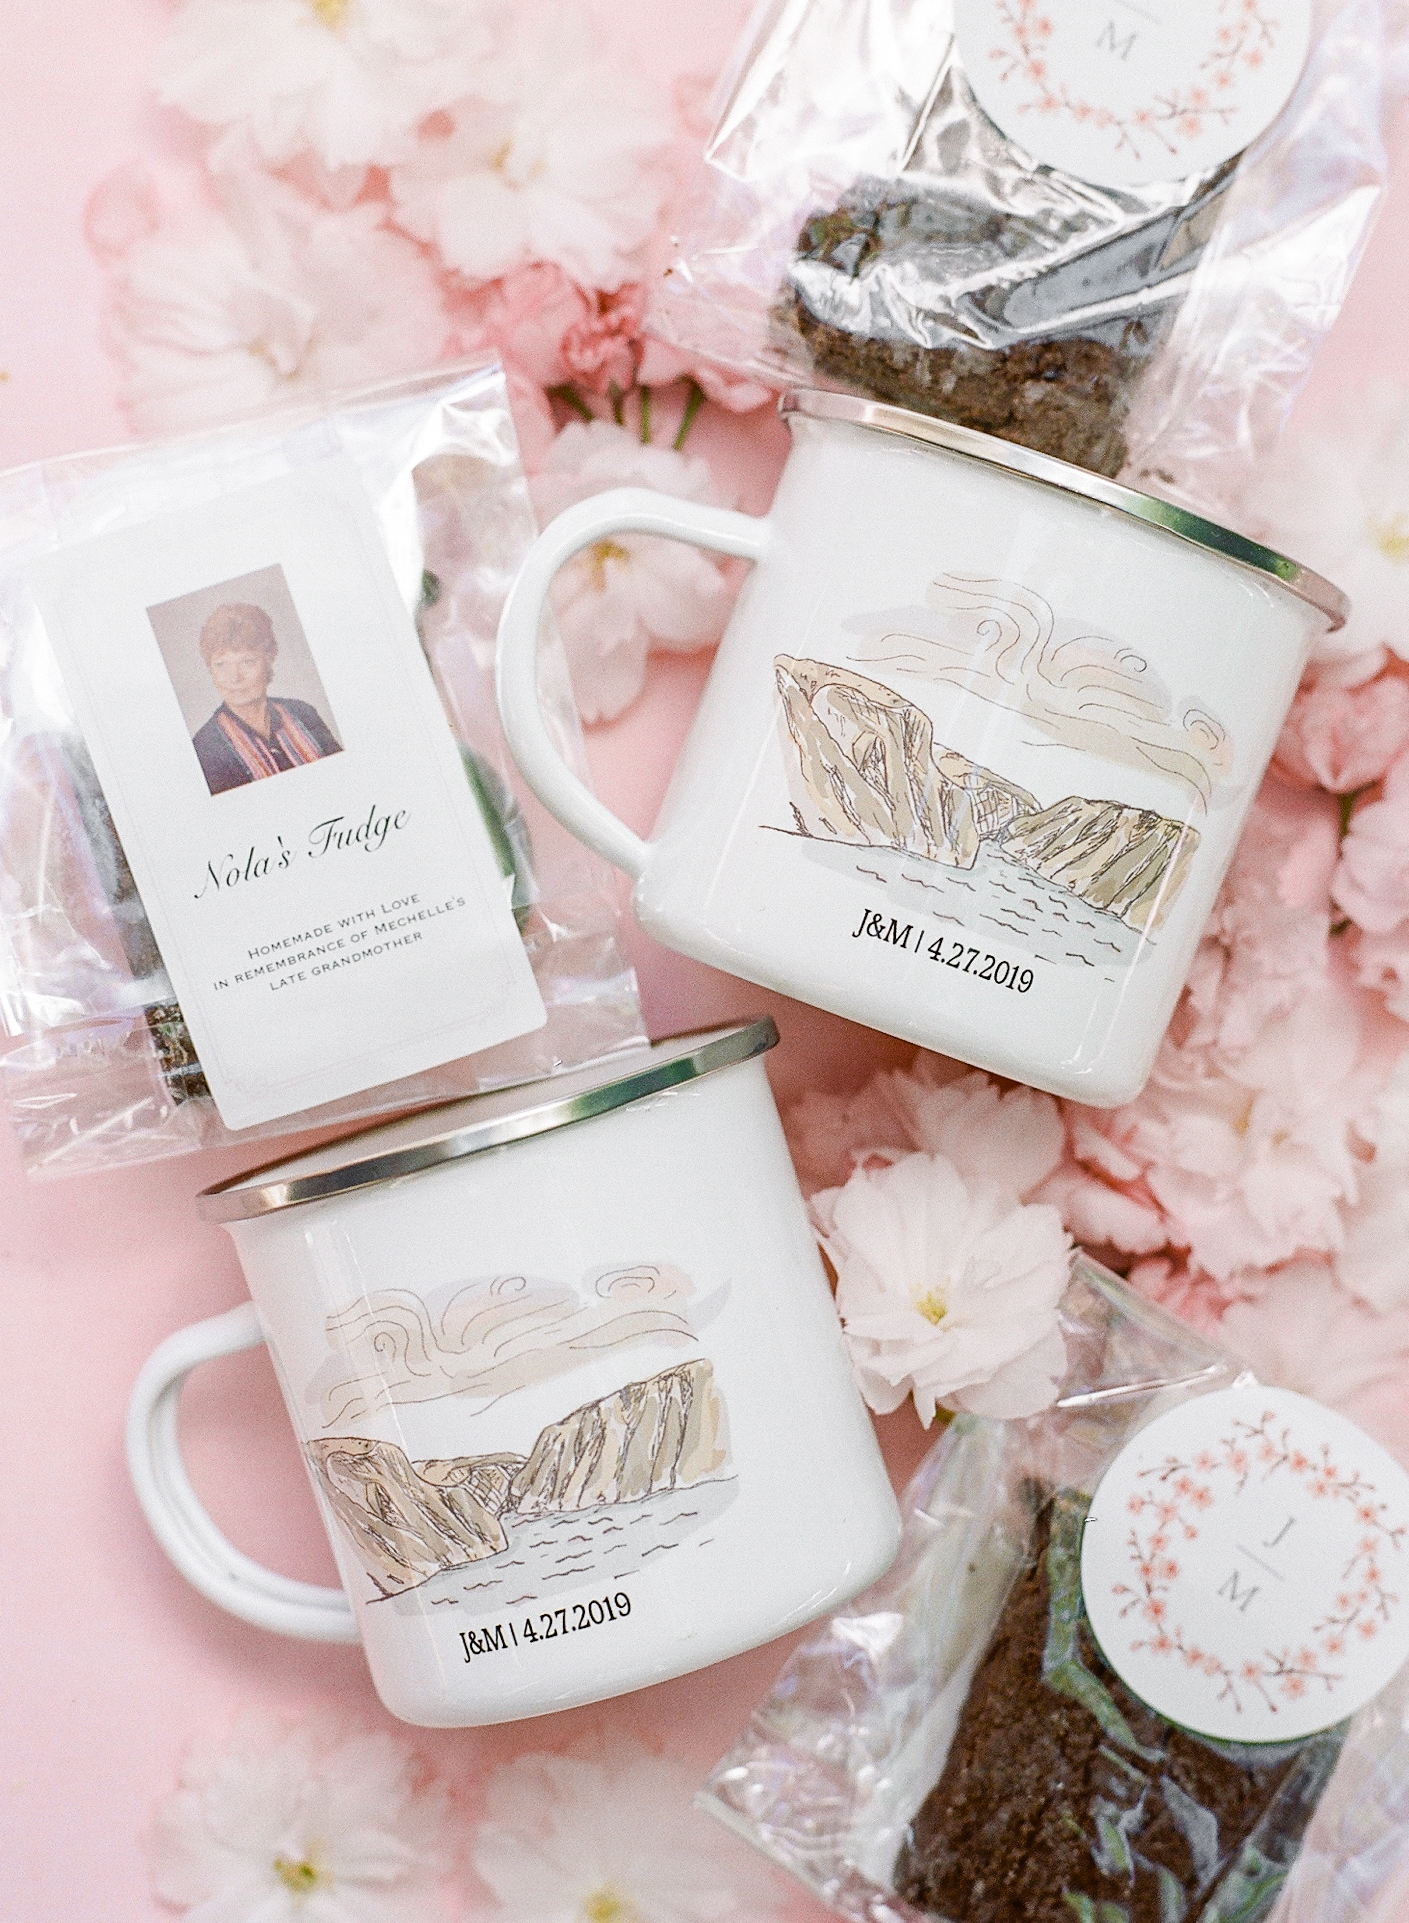 mechelle julia wedding favors mugs tea